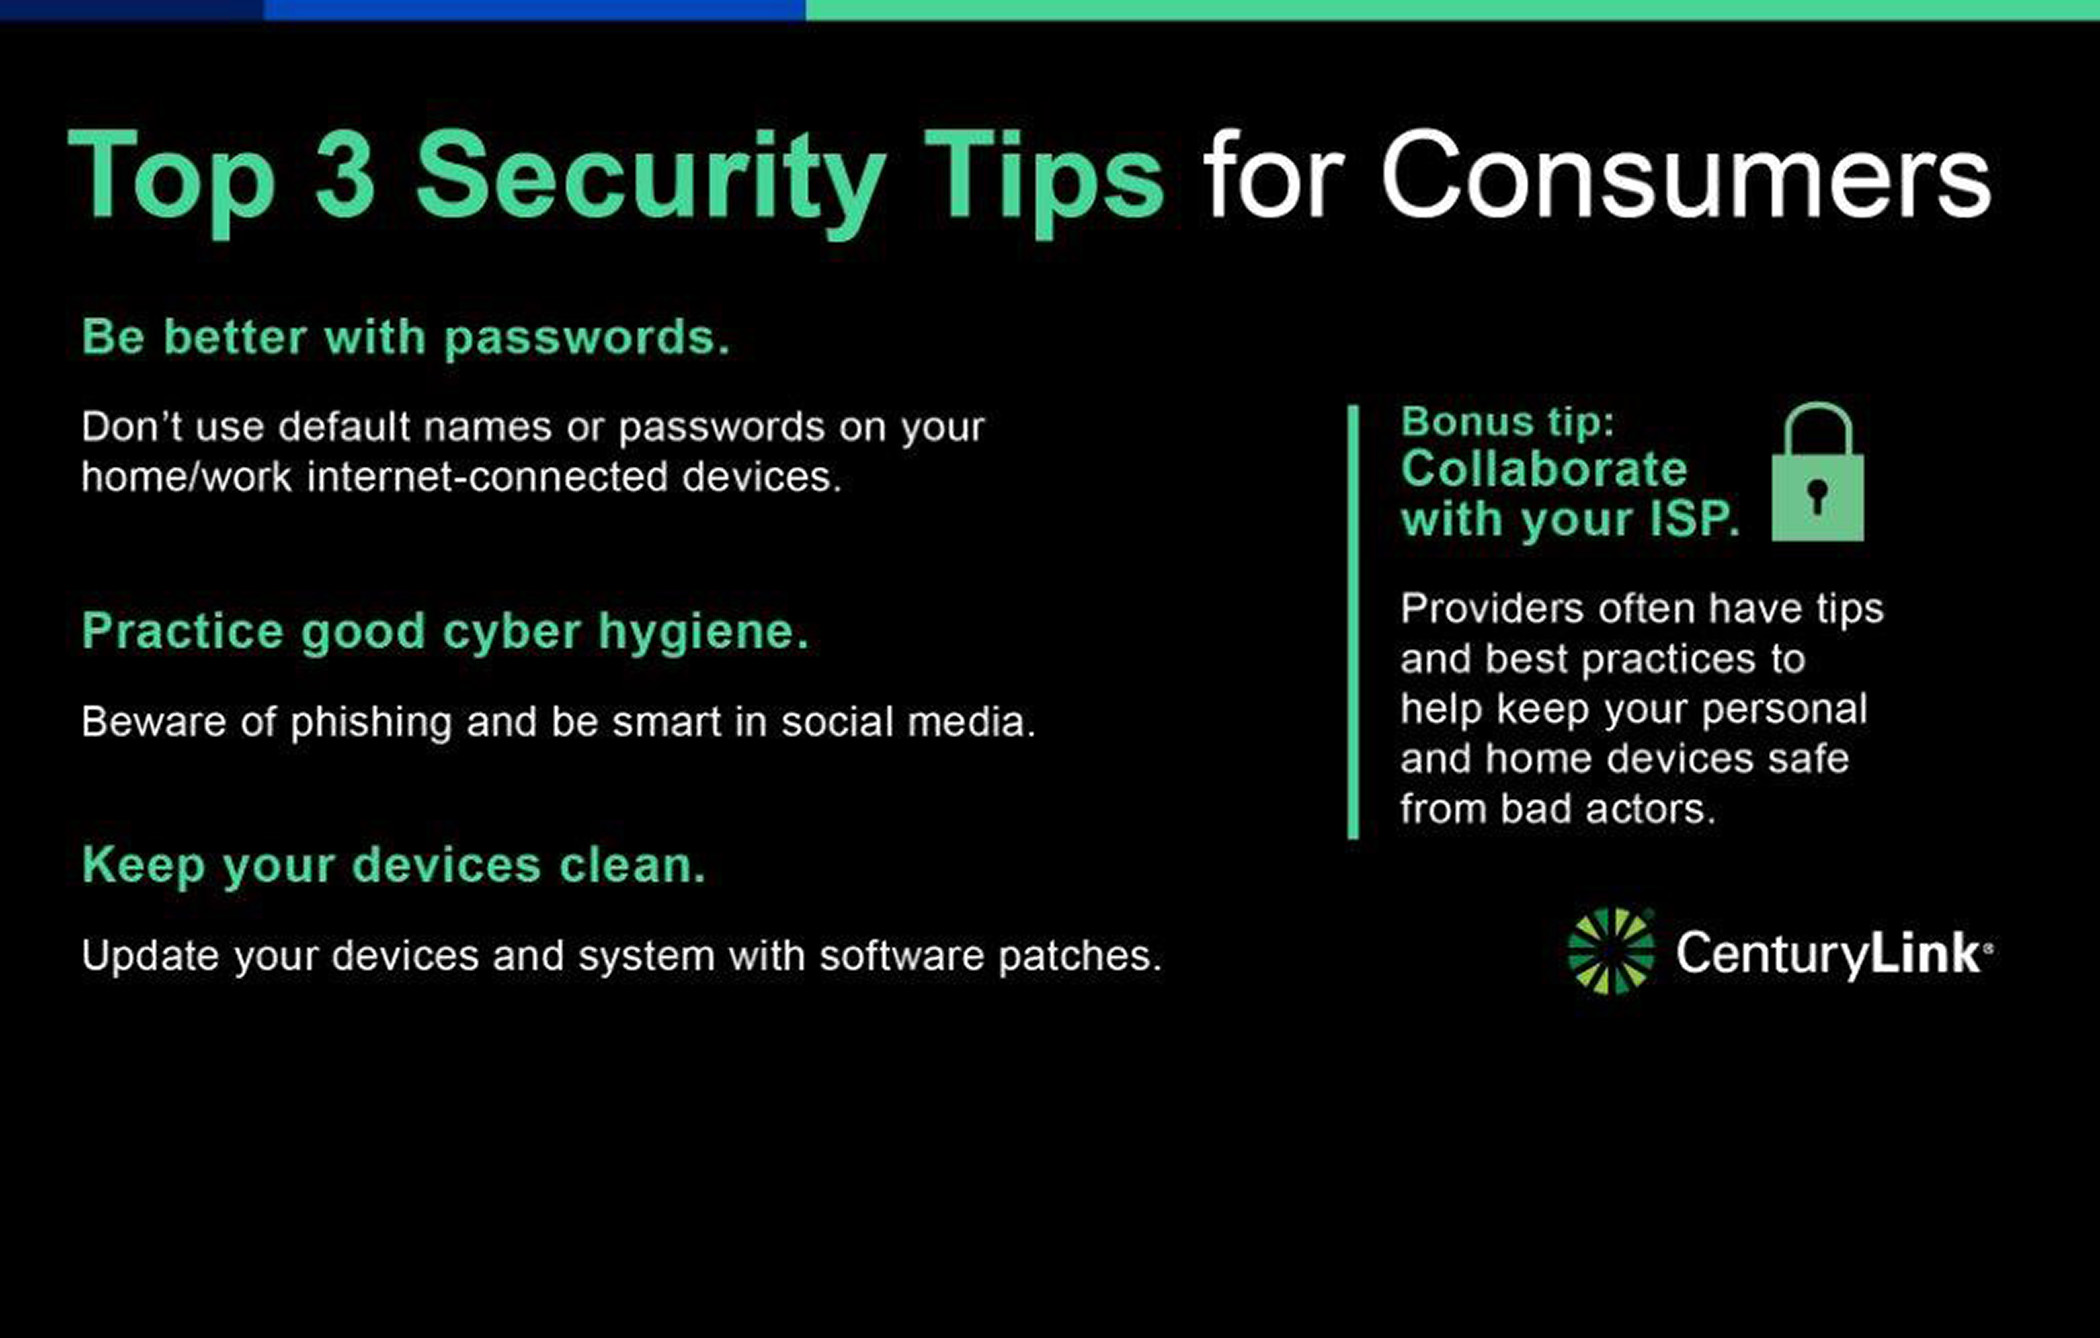 Top 3 Security Tips for Consumers